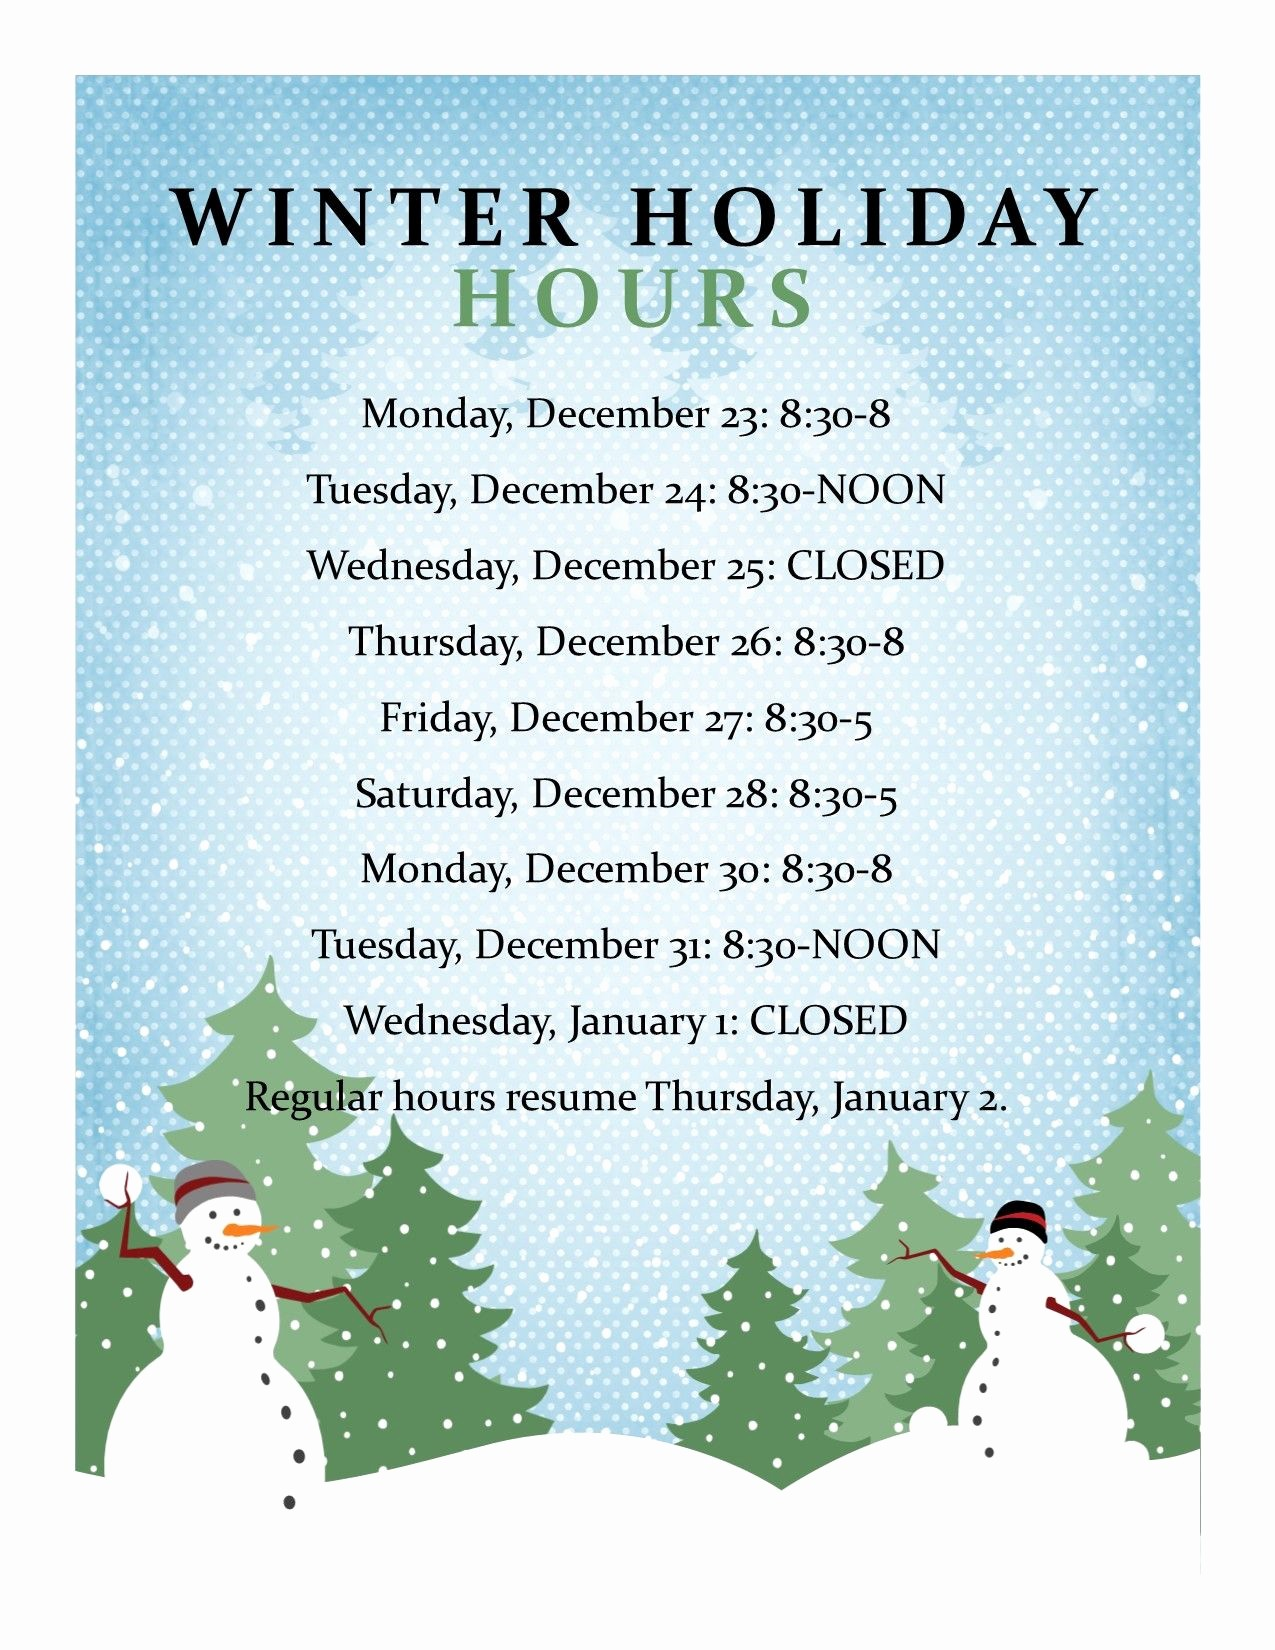 Closed for the Holidays Sign Beautiful Open Closed Signs with Holiday Hours Google Search